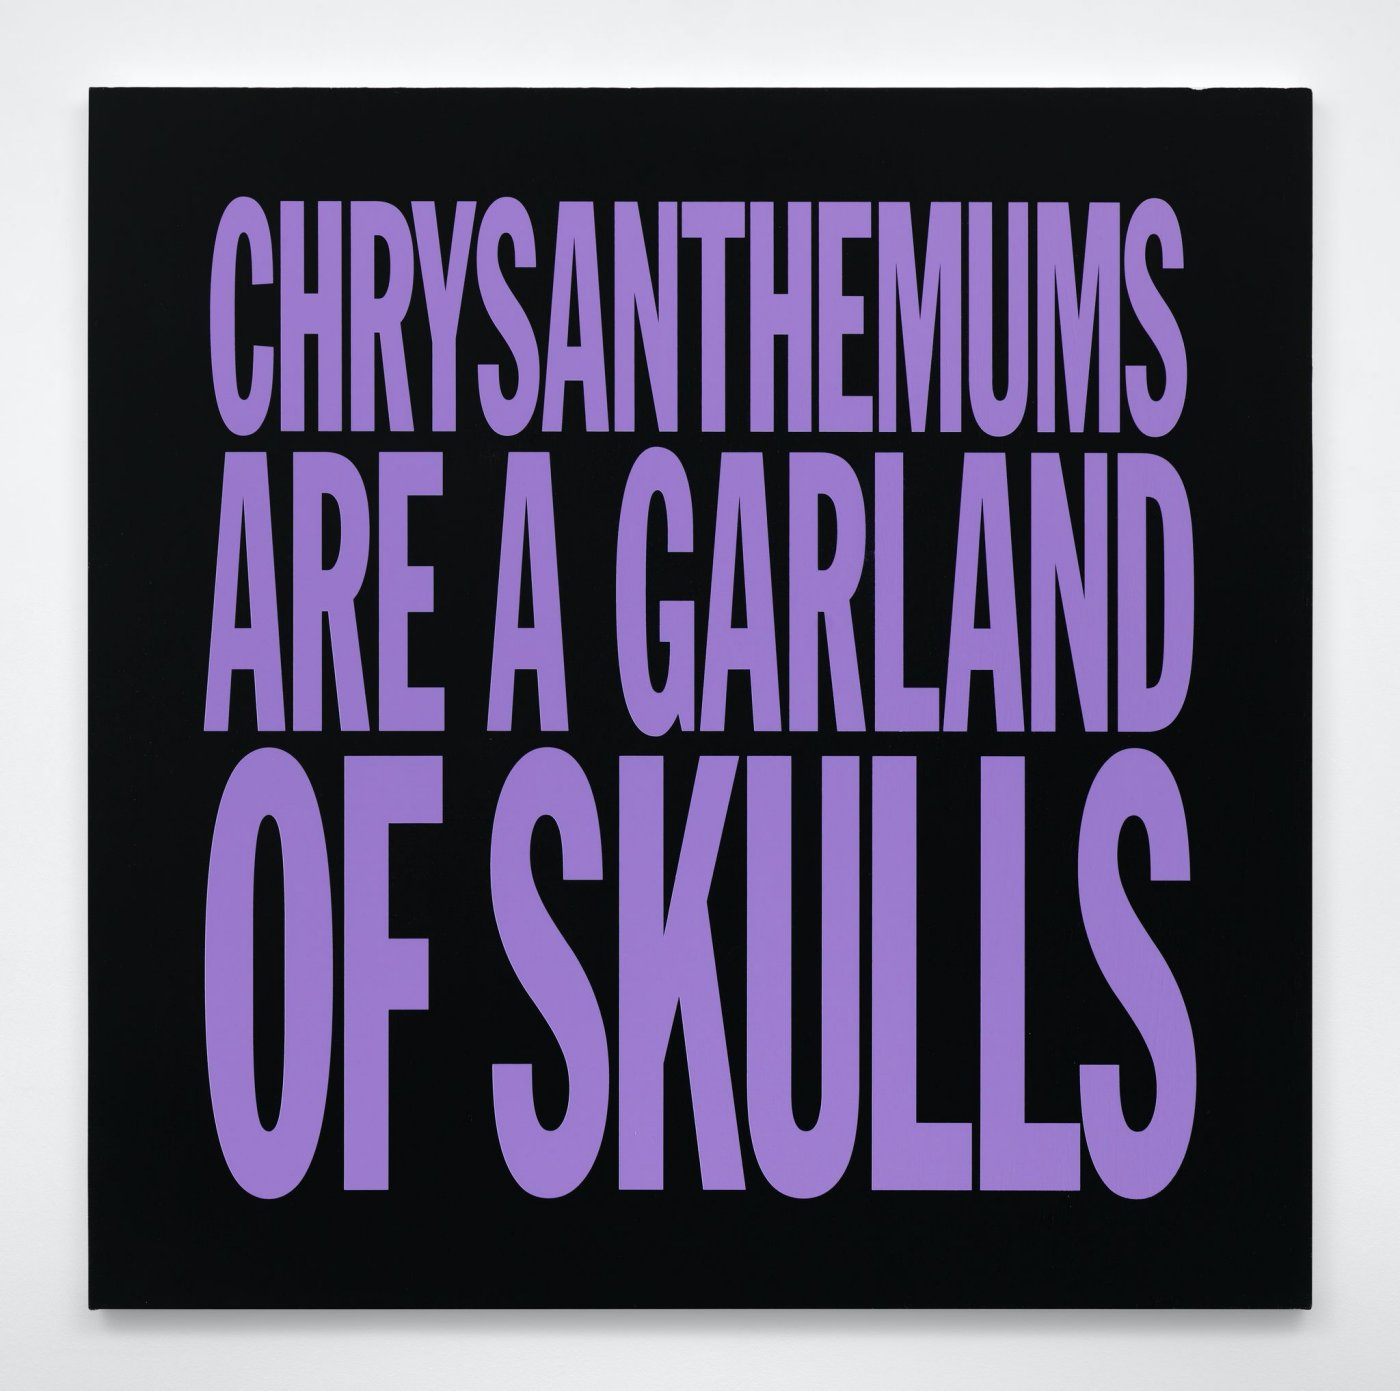 CHRYSANTHEMUMS ARE A GARLAND OF SKULLS